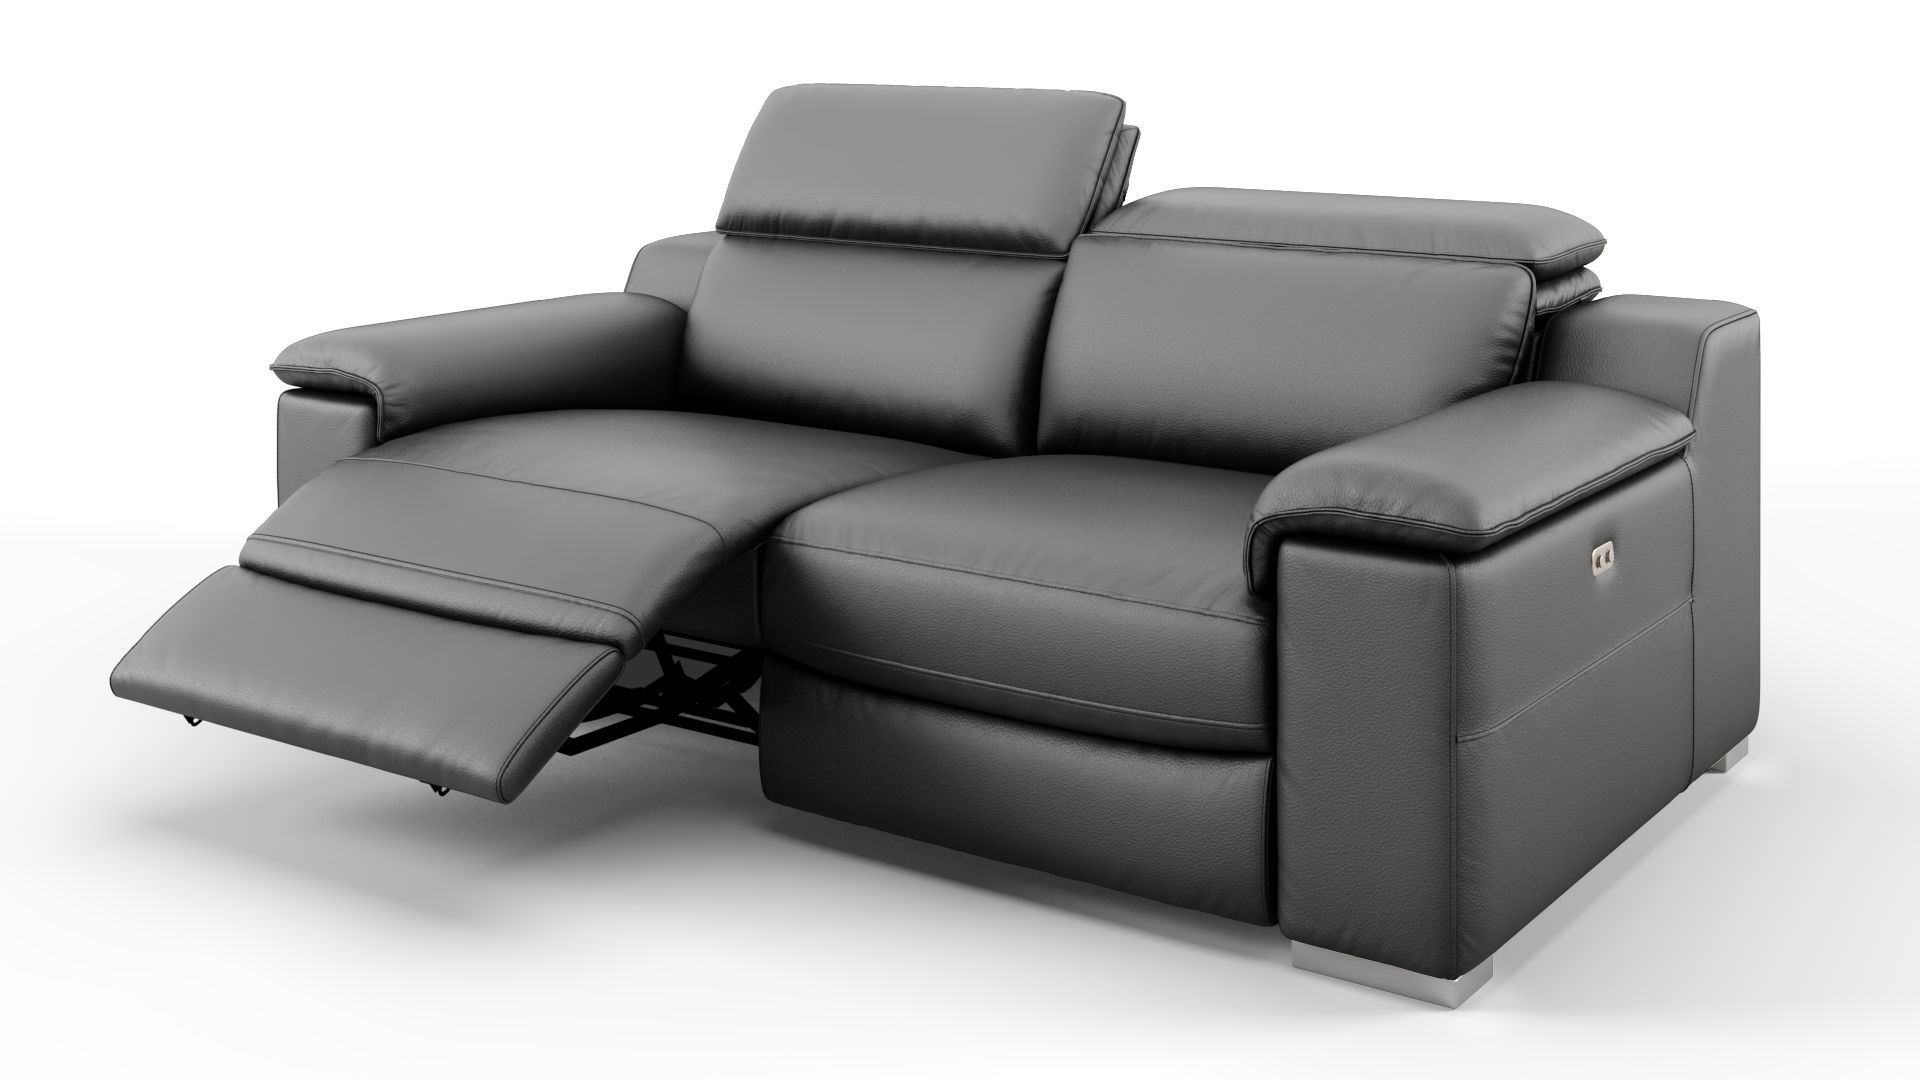 Marvelous Design Sofa | 2 Sitzer Couch Mit Relaxfunktion | Sofanella Design Inspirations